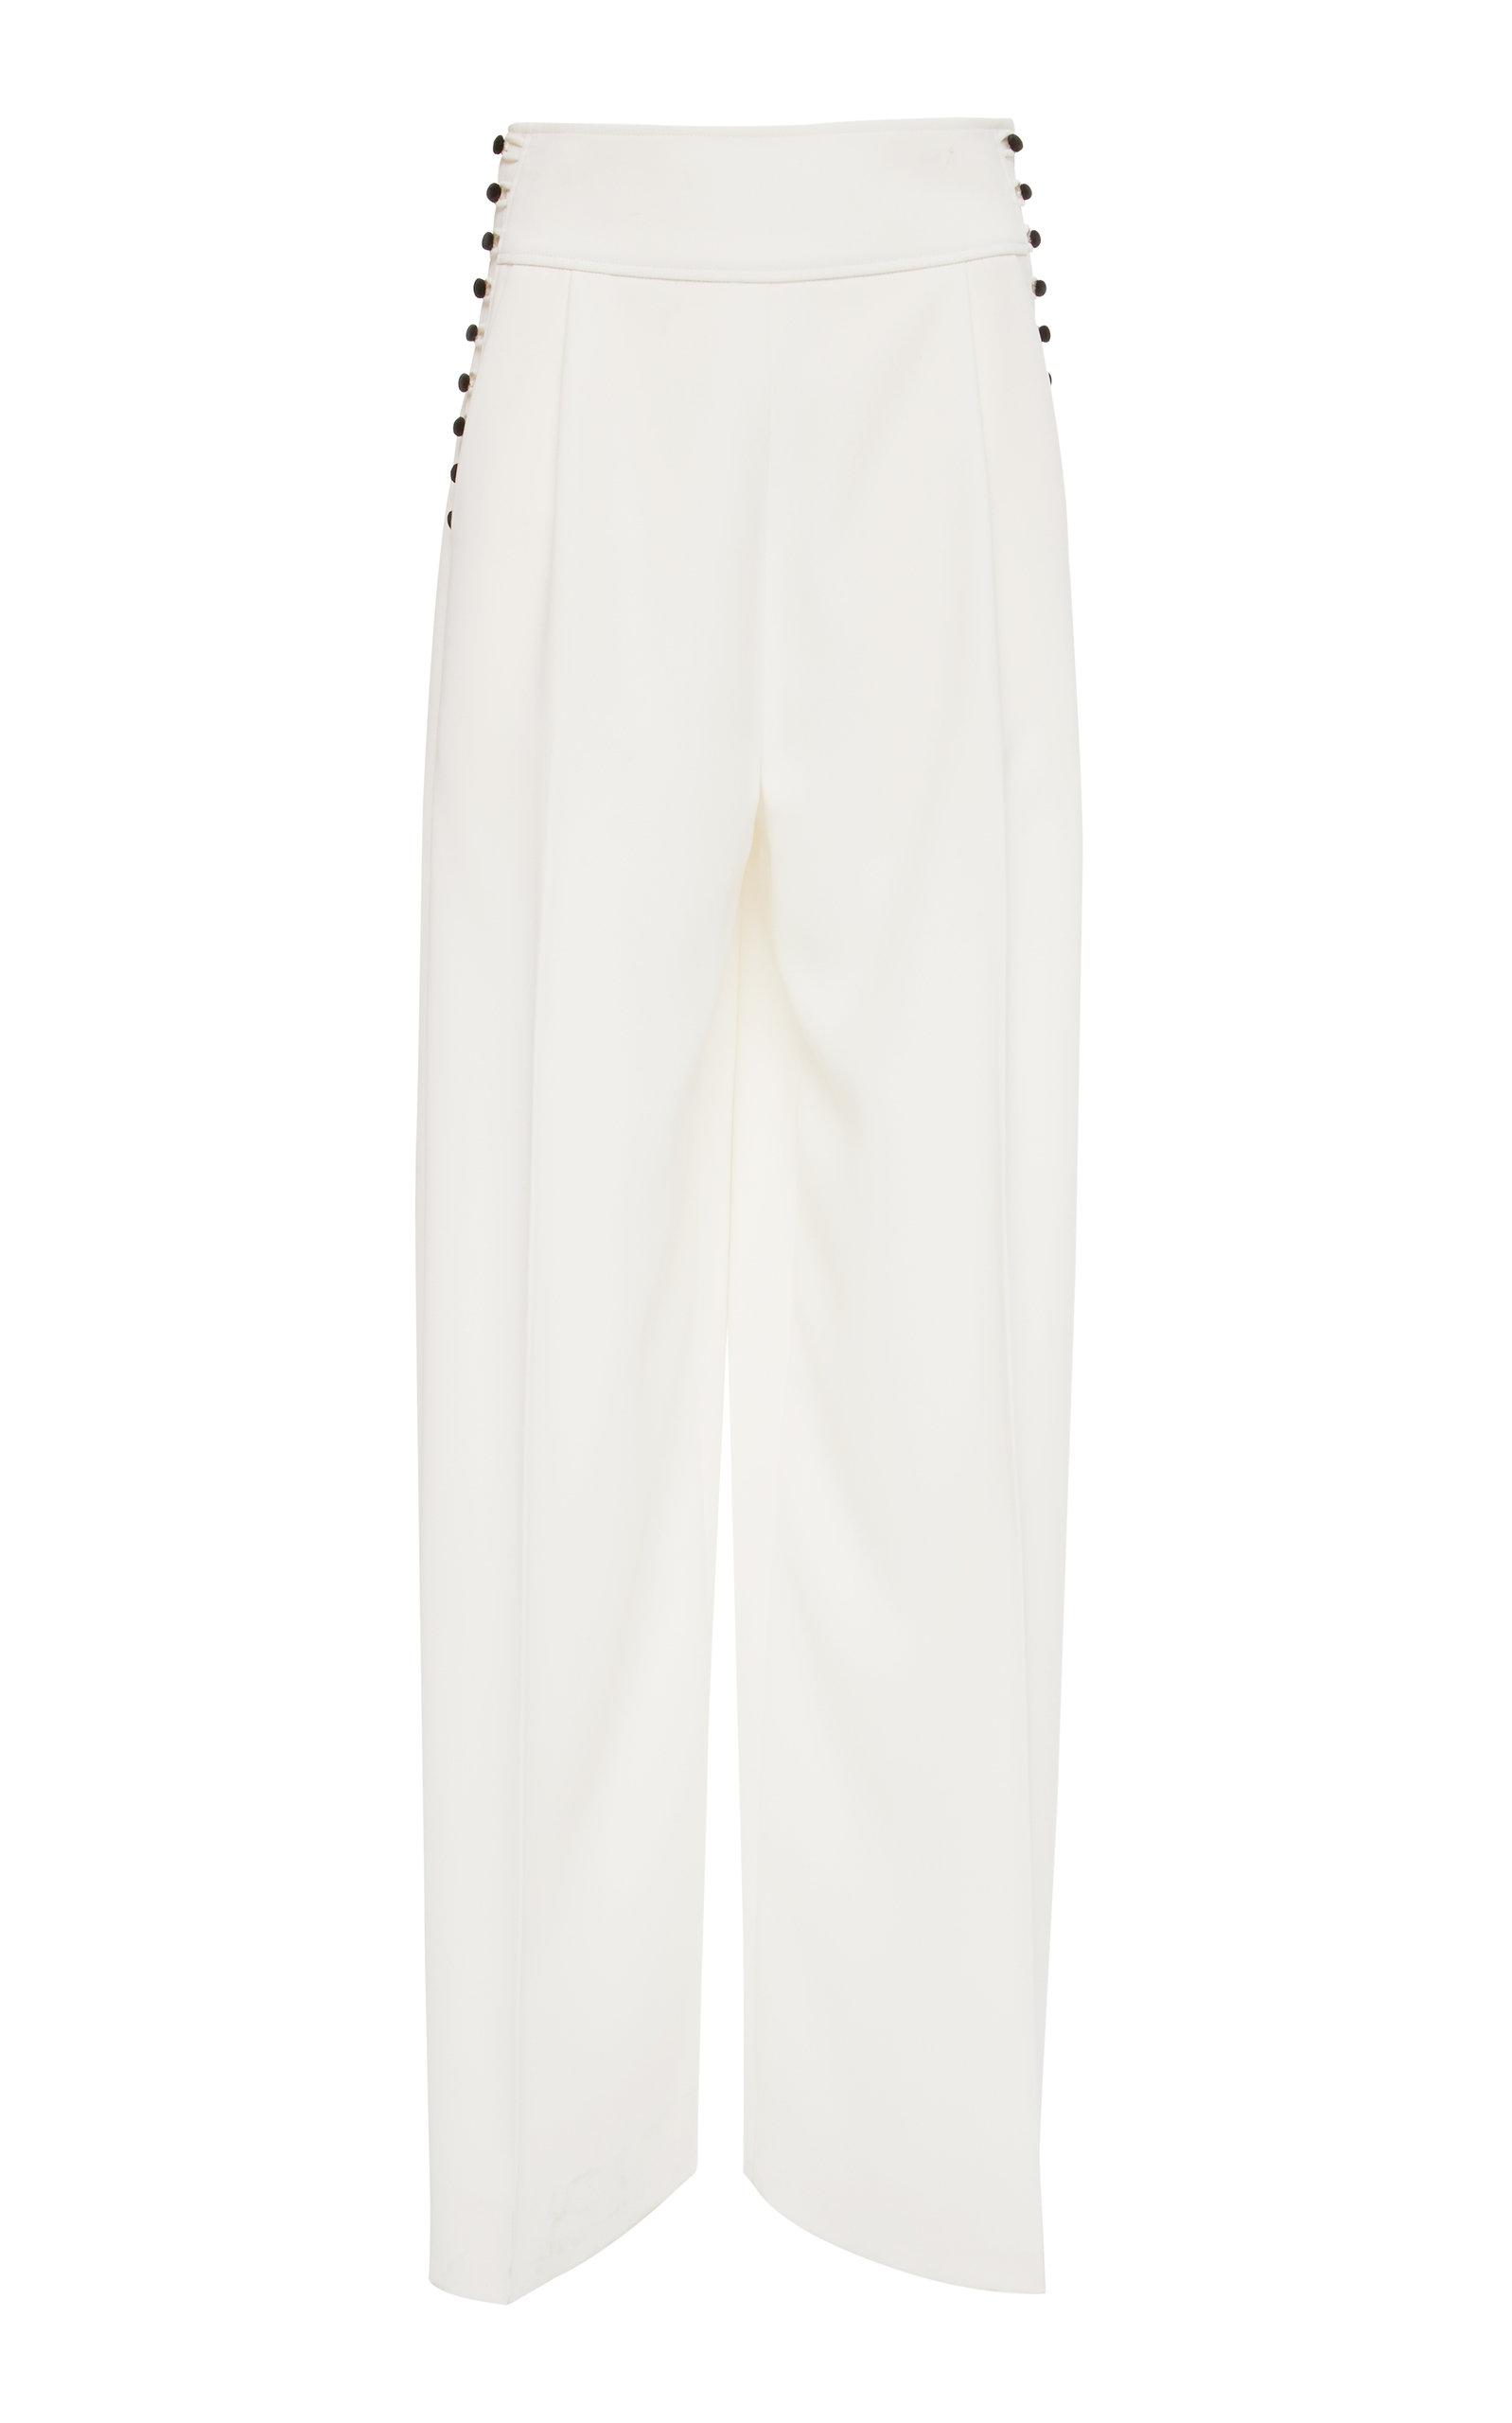 Adeam Buttoned Pant In White